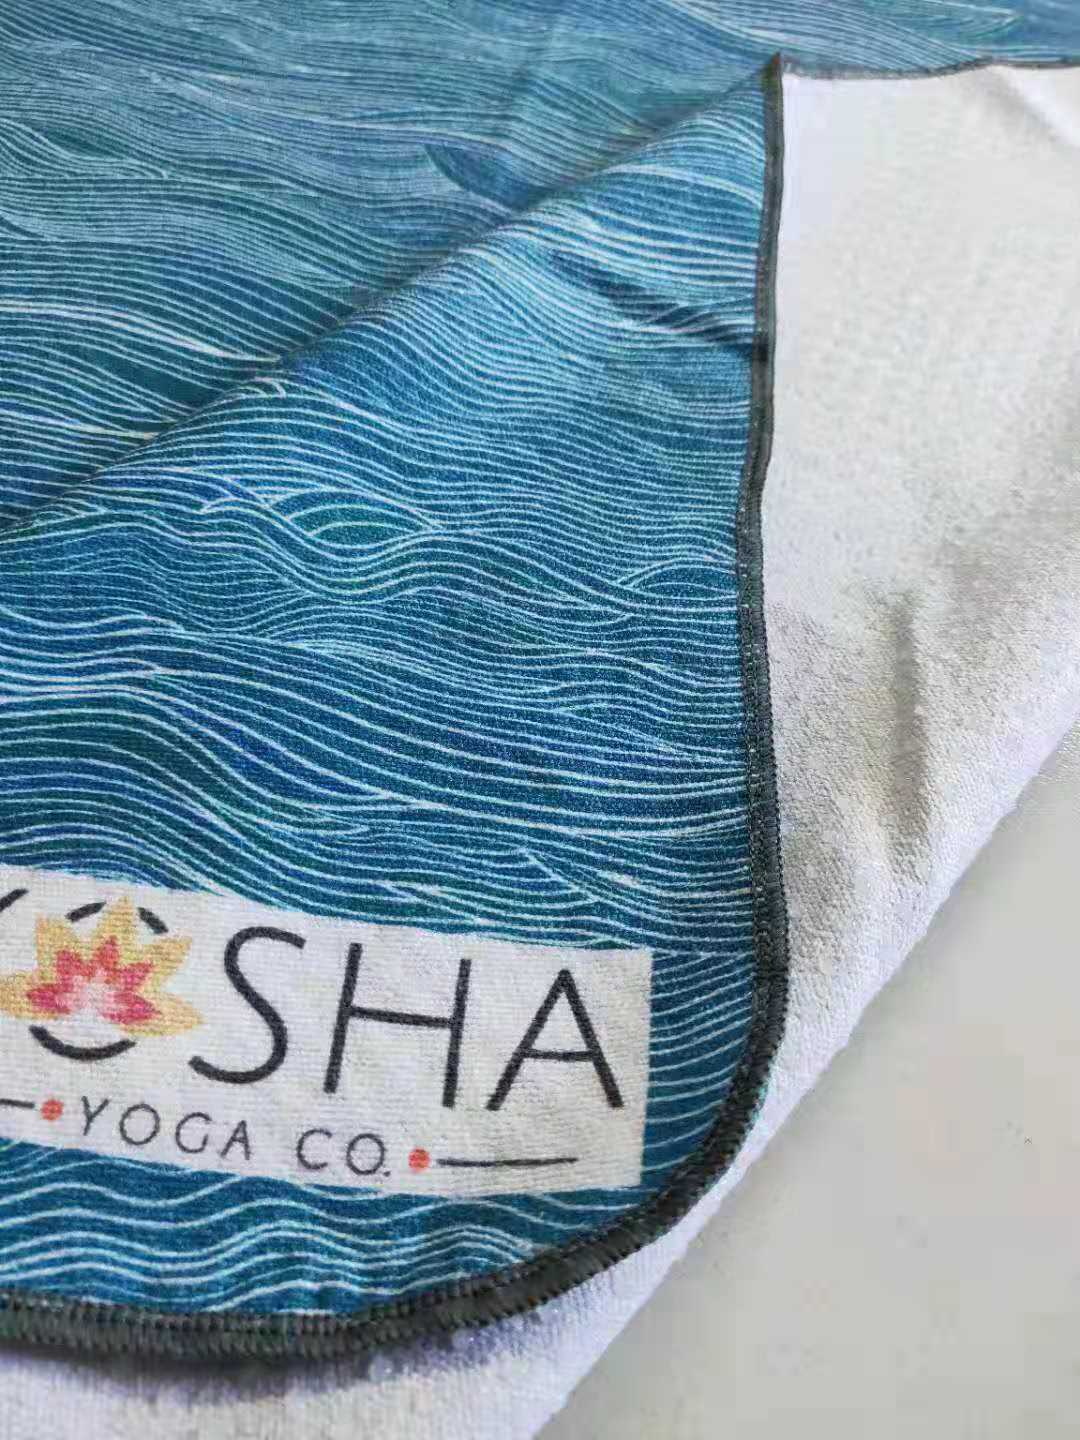 Kosha Yoga Co Transform Microfibre Silicone Towel Ocean